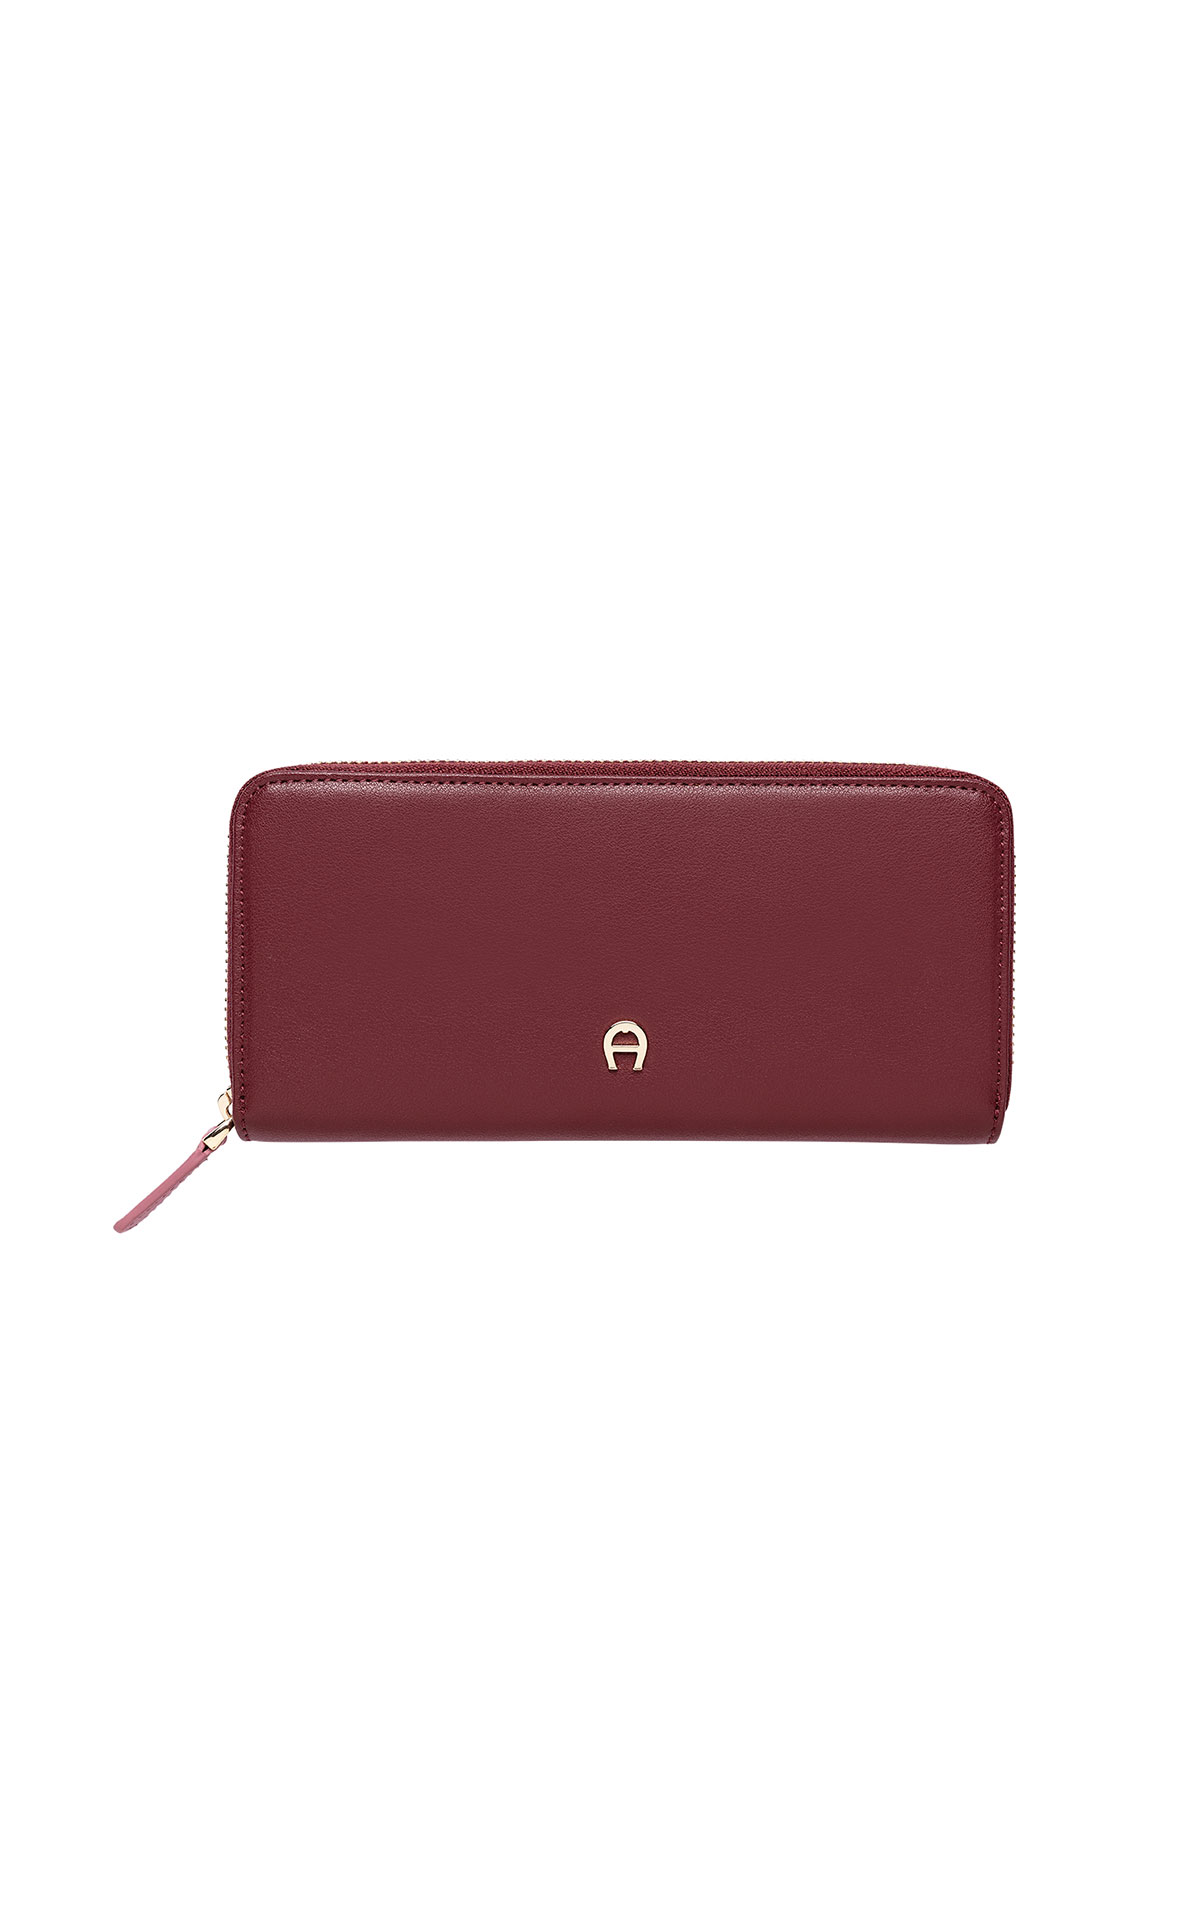 Red Wallet by Aigner